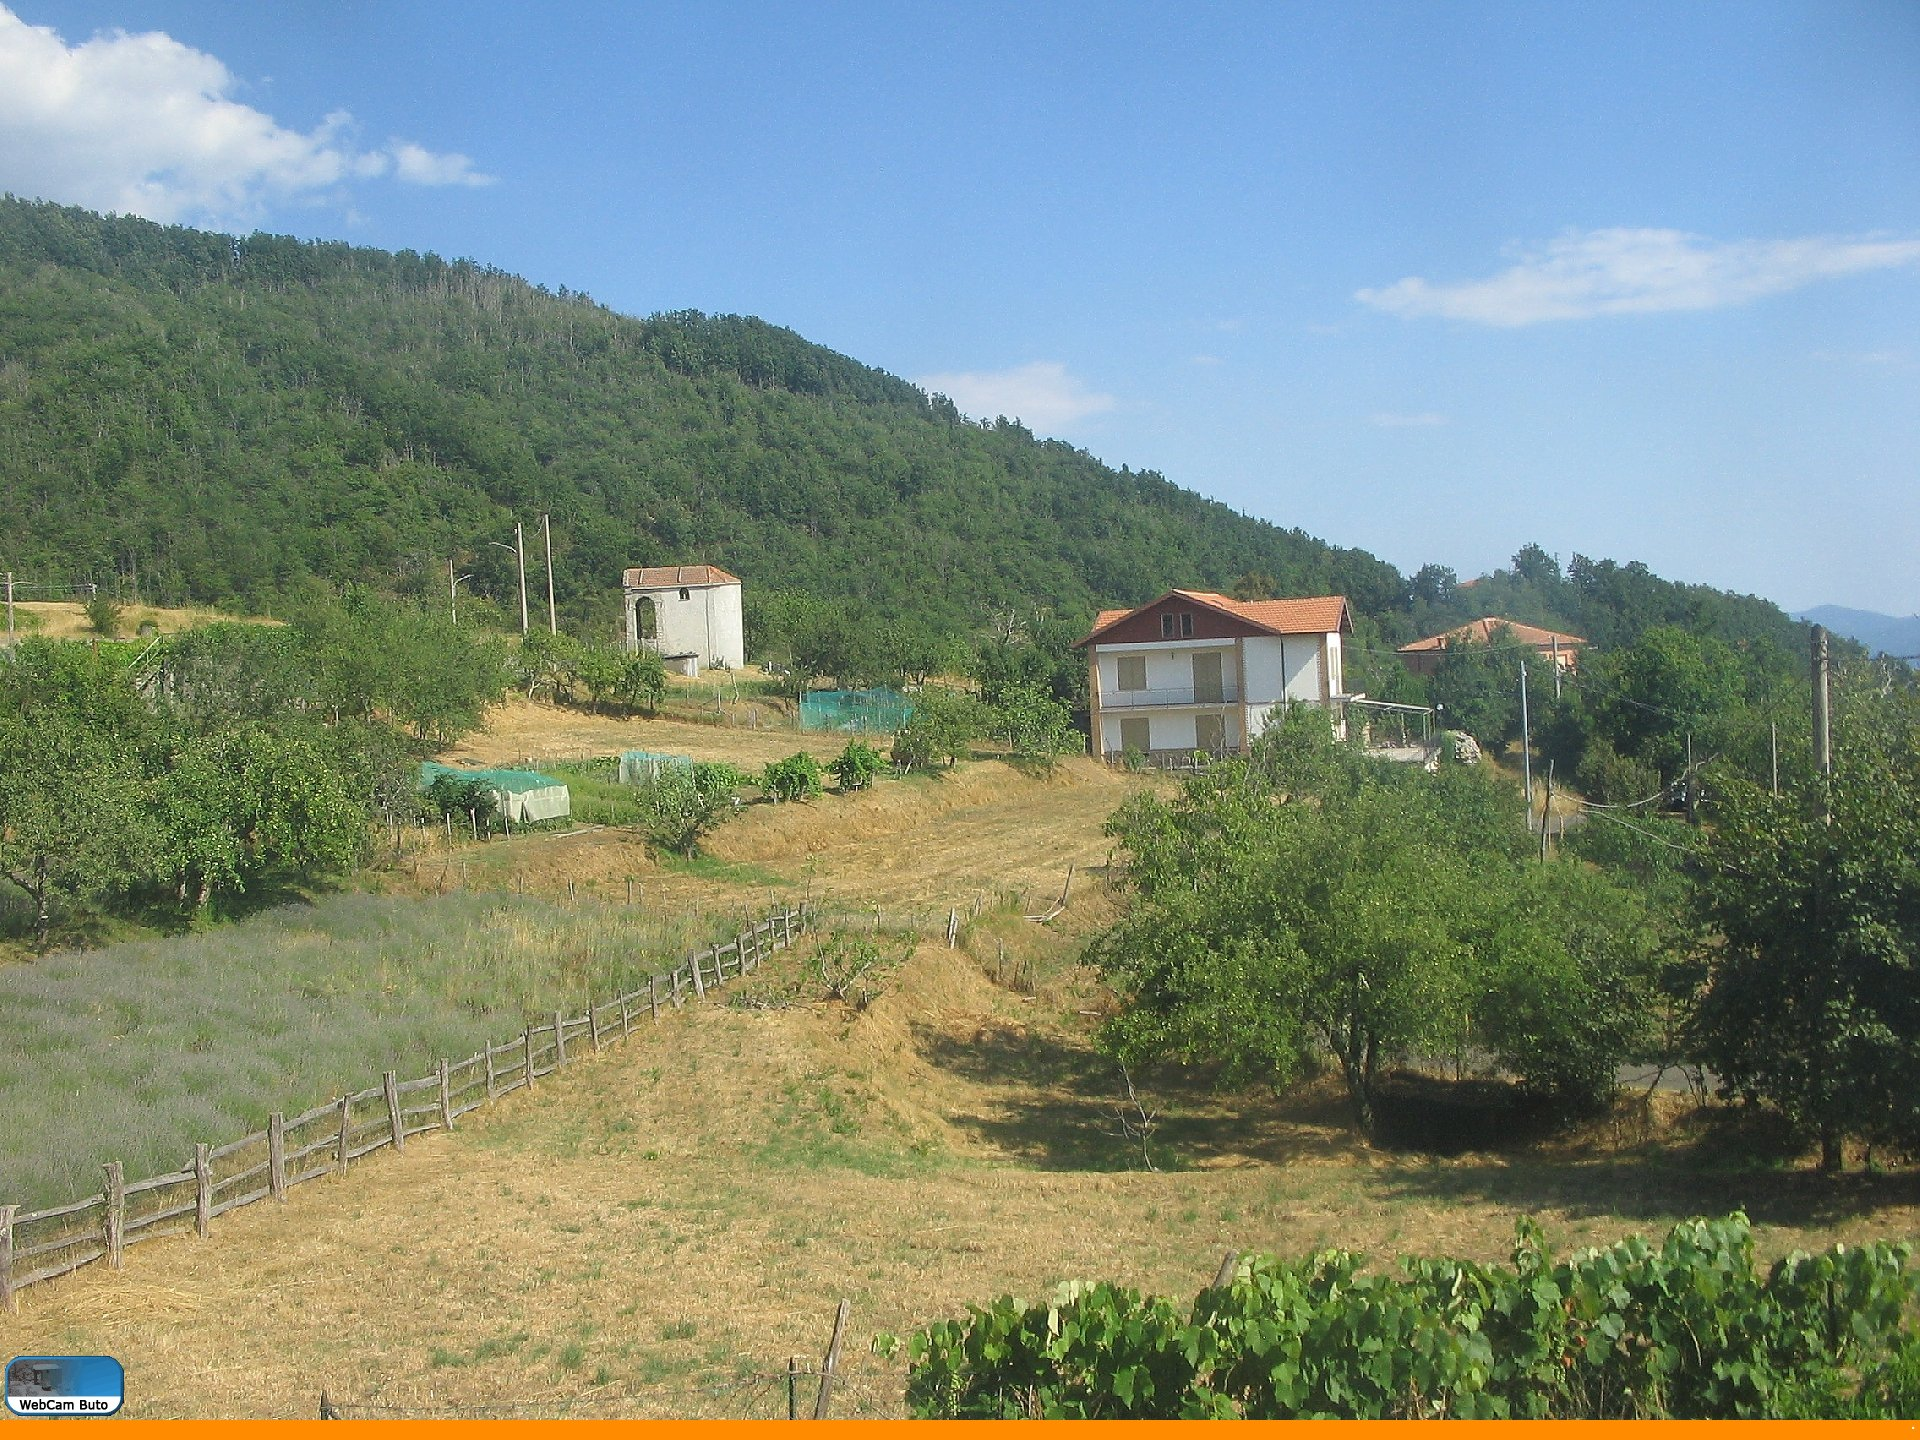 Webcam Buto di Varese Ligure SP